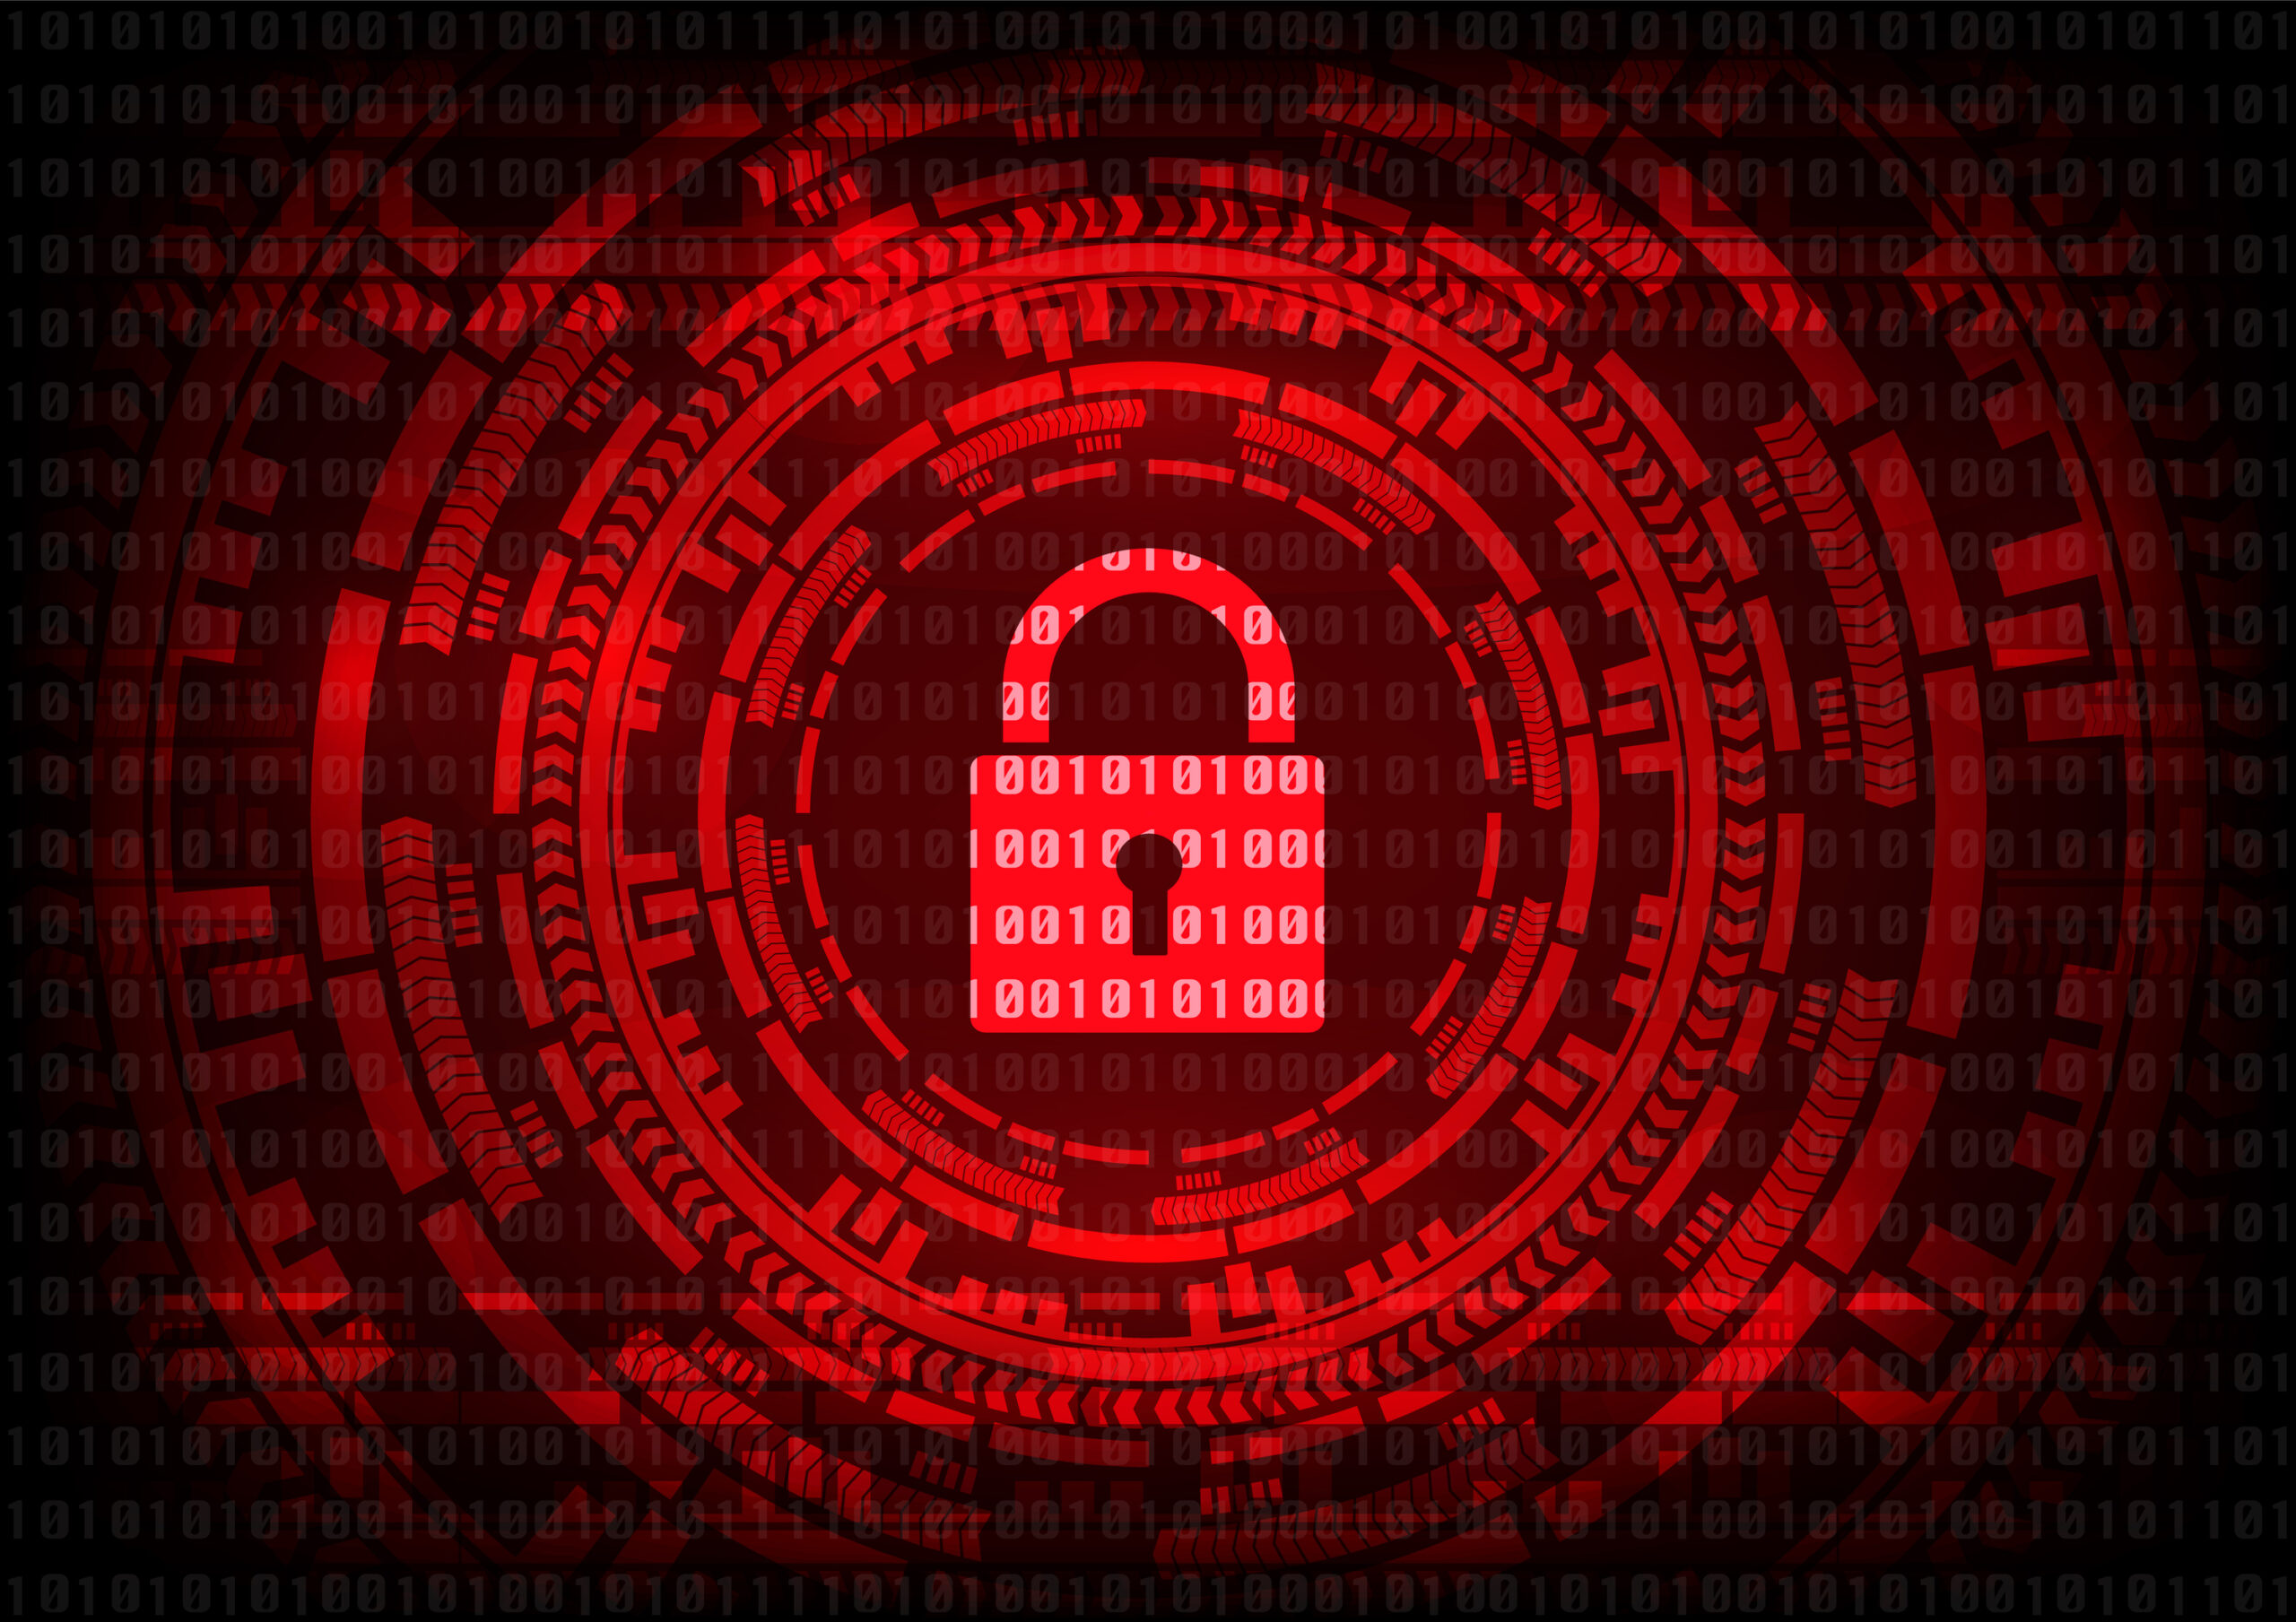 White House to federal agencies: Step up your endpoint monitoring